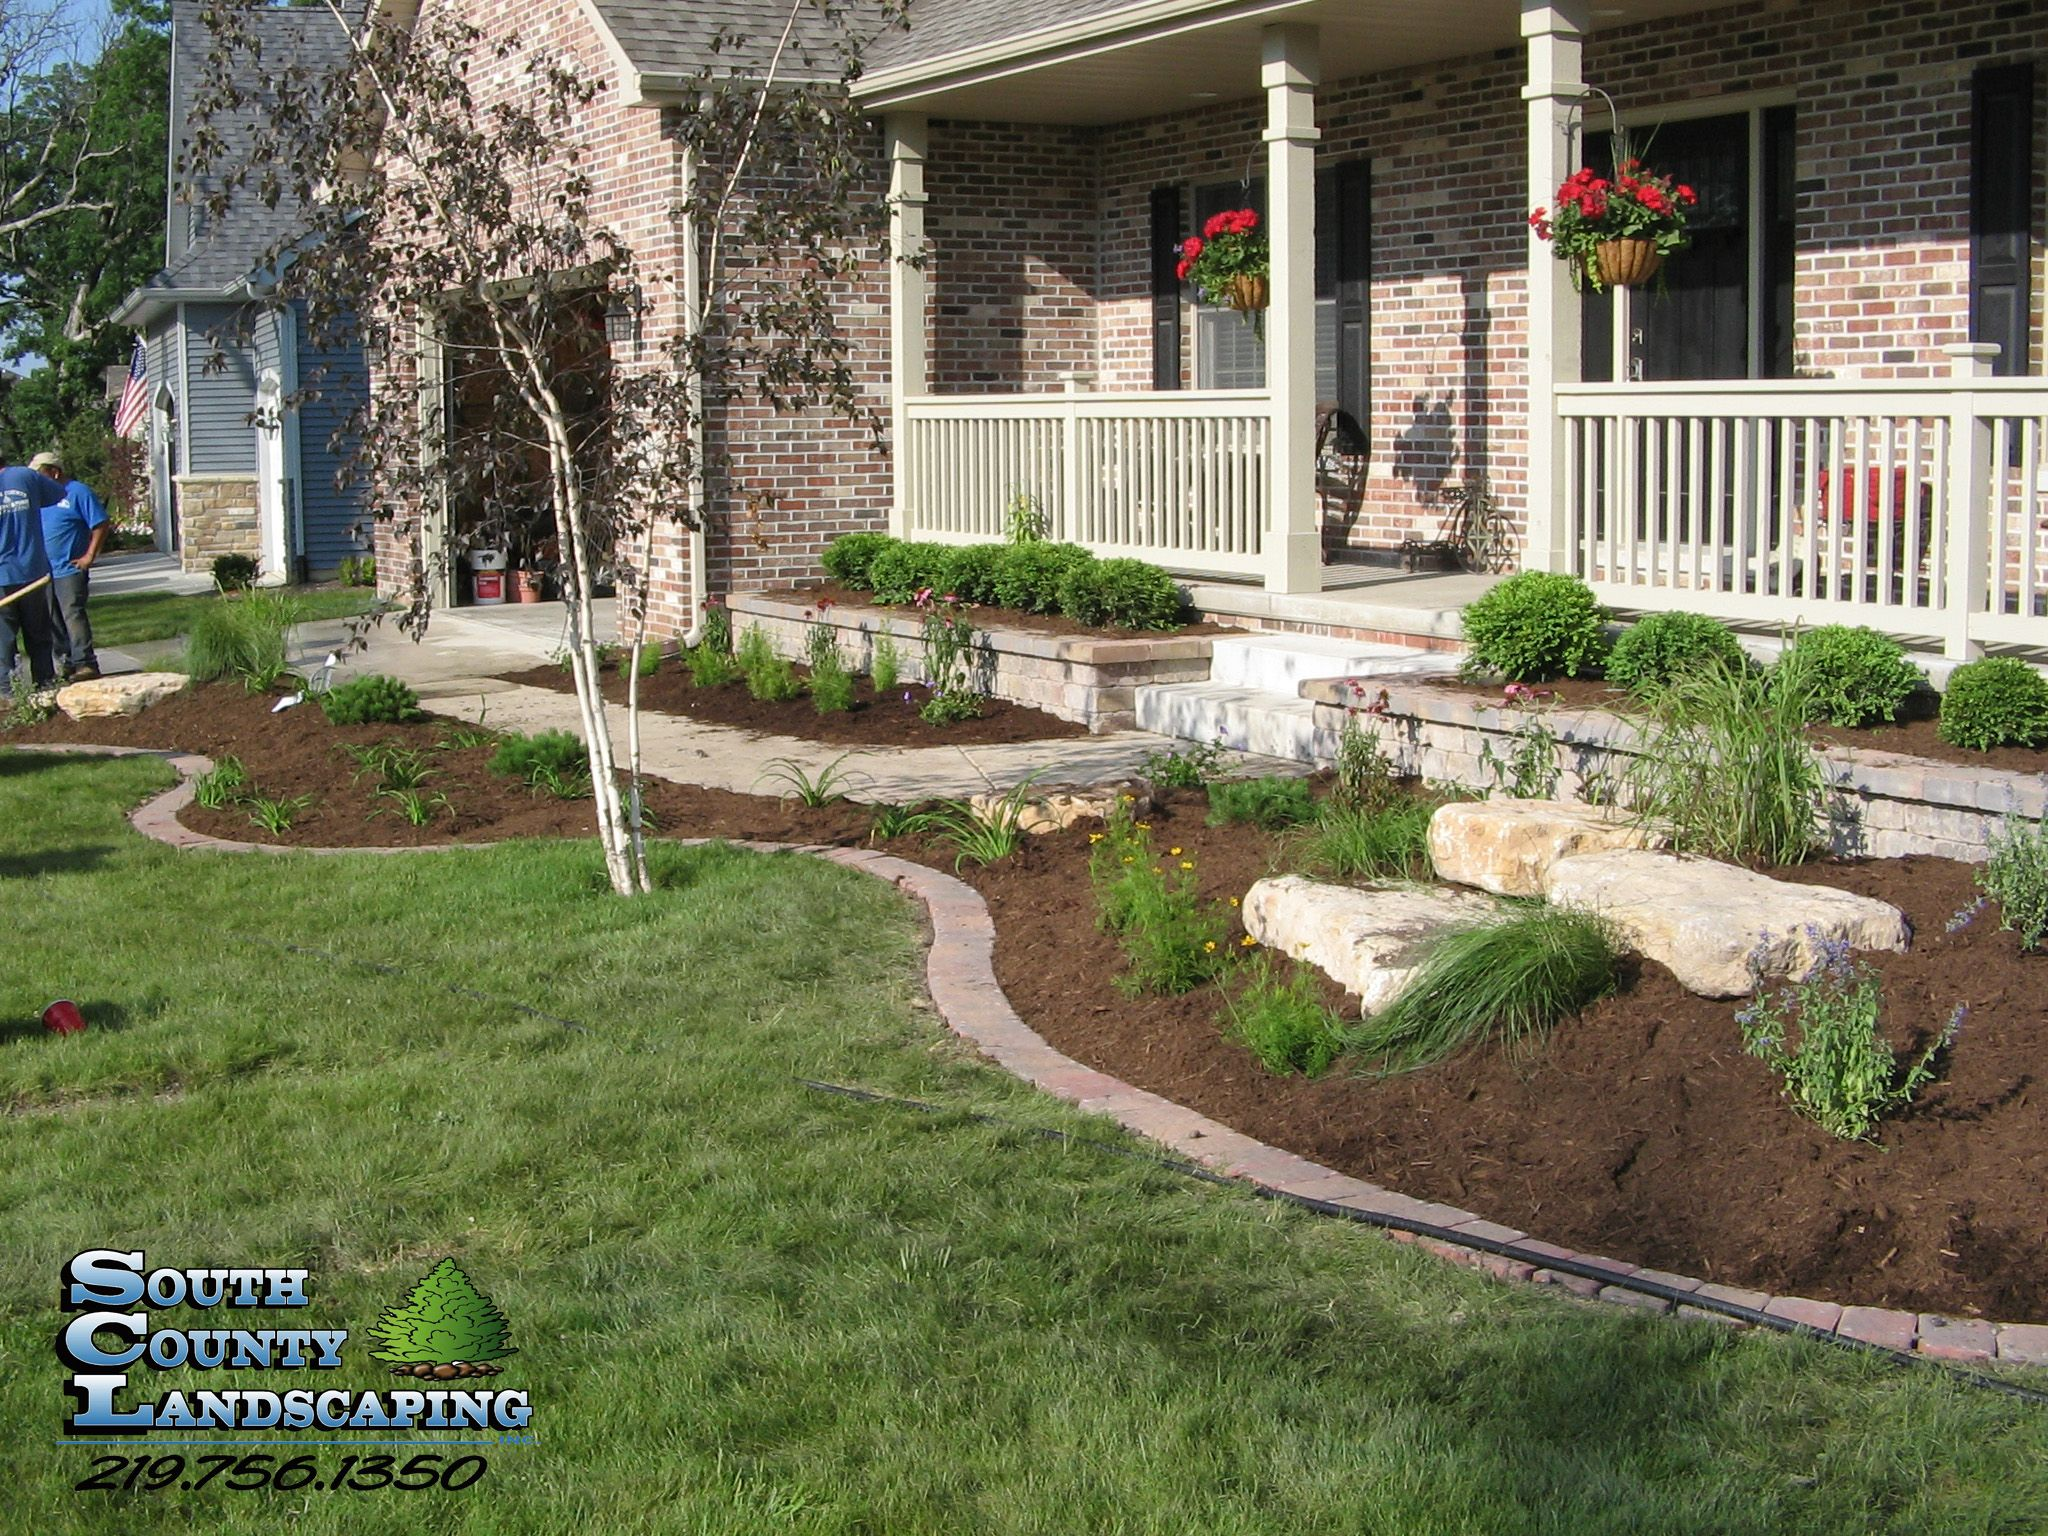 Landscaping services completed in Northwest Indiana | South County ...